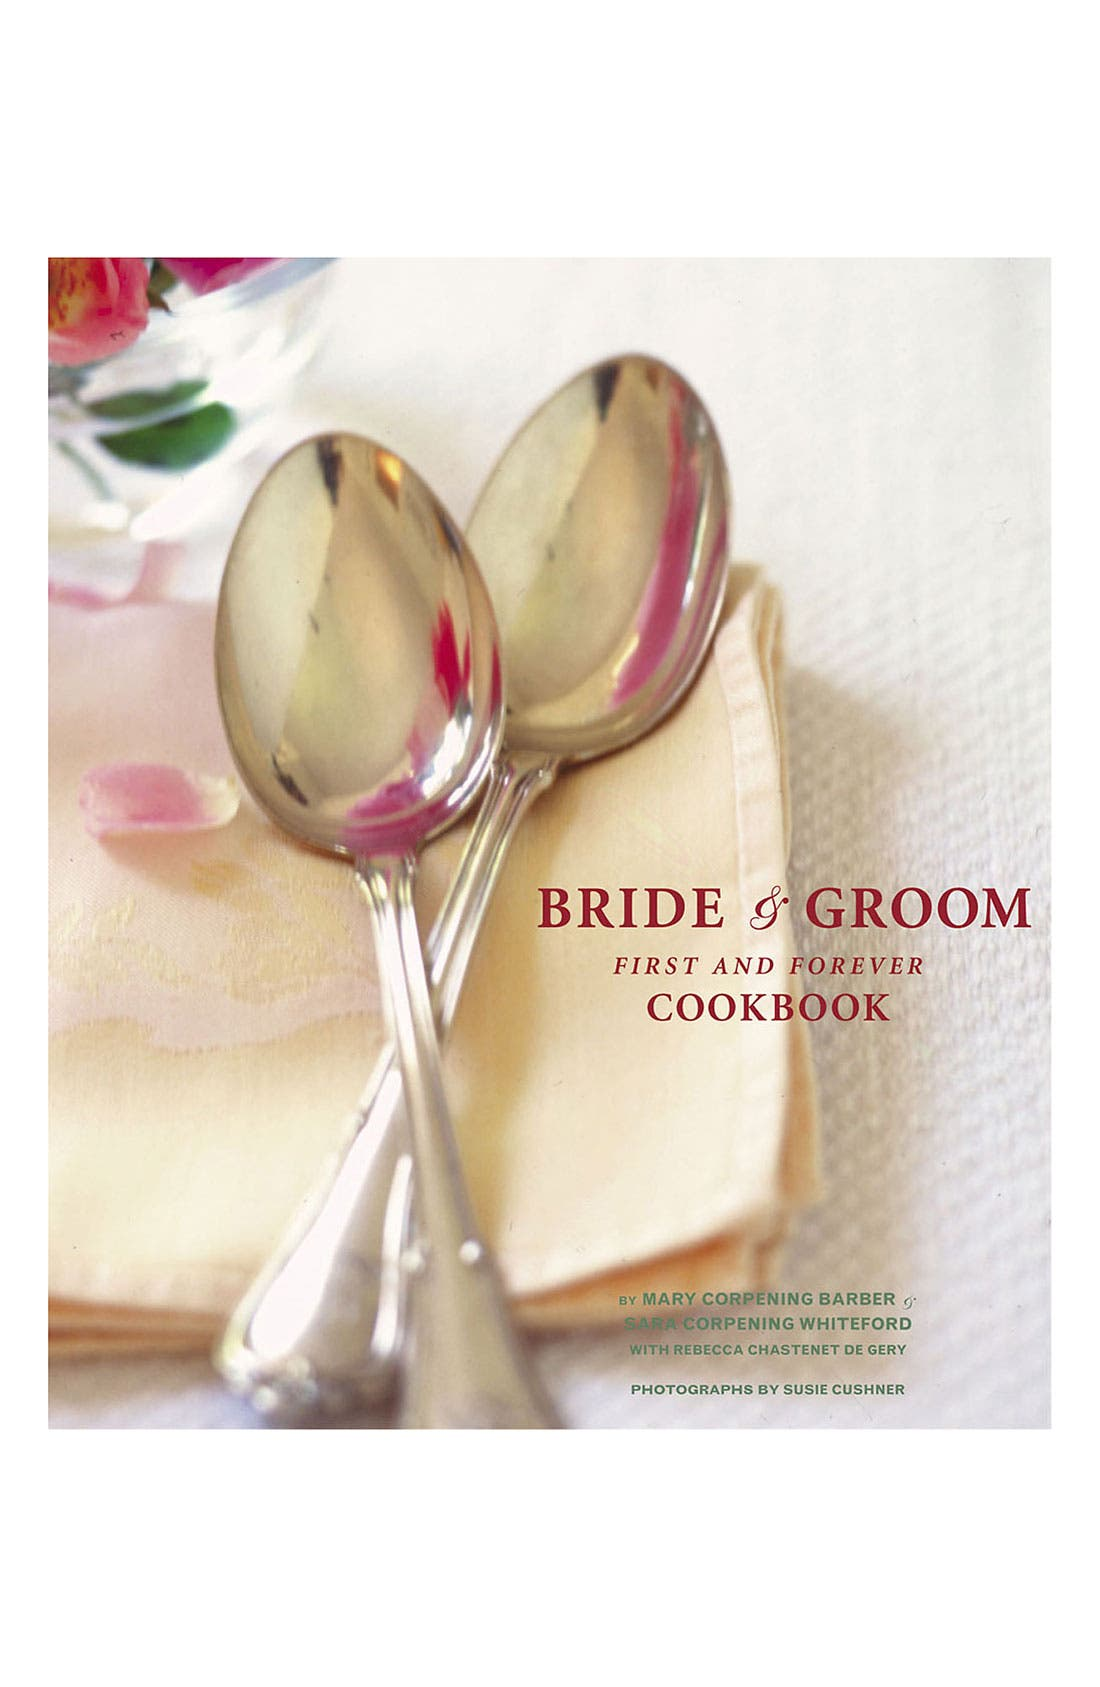 Main Image - 'Bride & Groom First and Forever' Cookbook